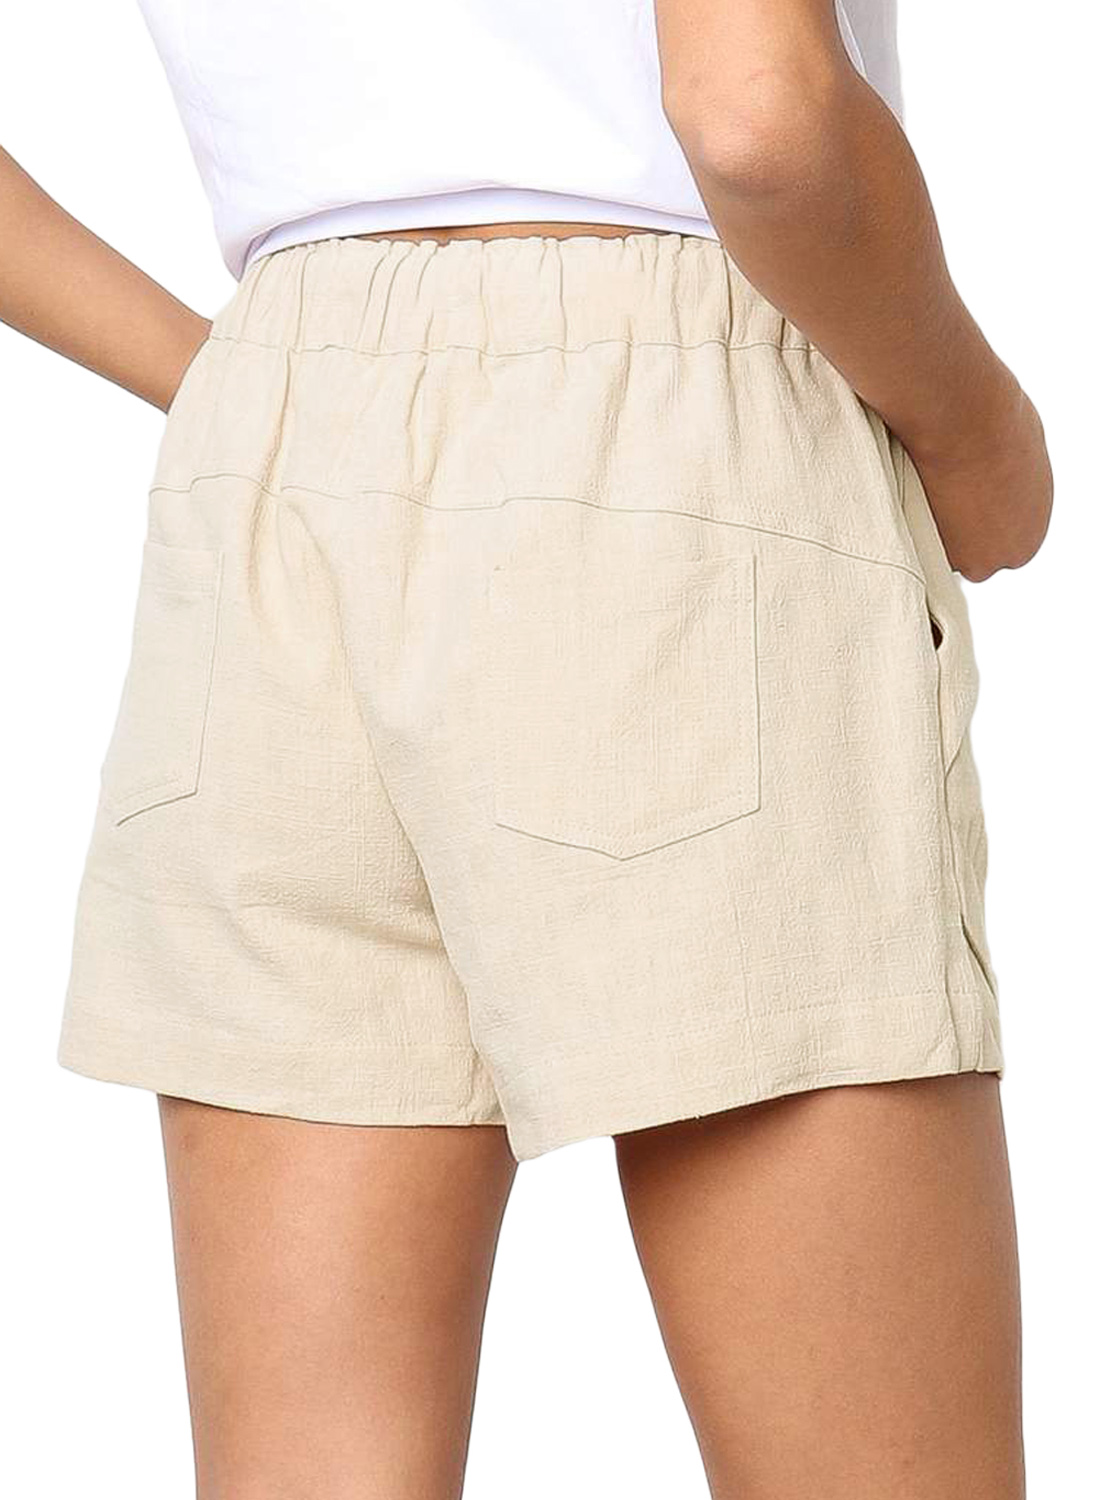 Fashion Ladies Casual Tie Shorts Pants